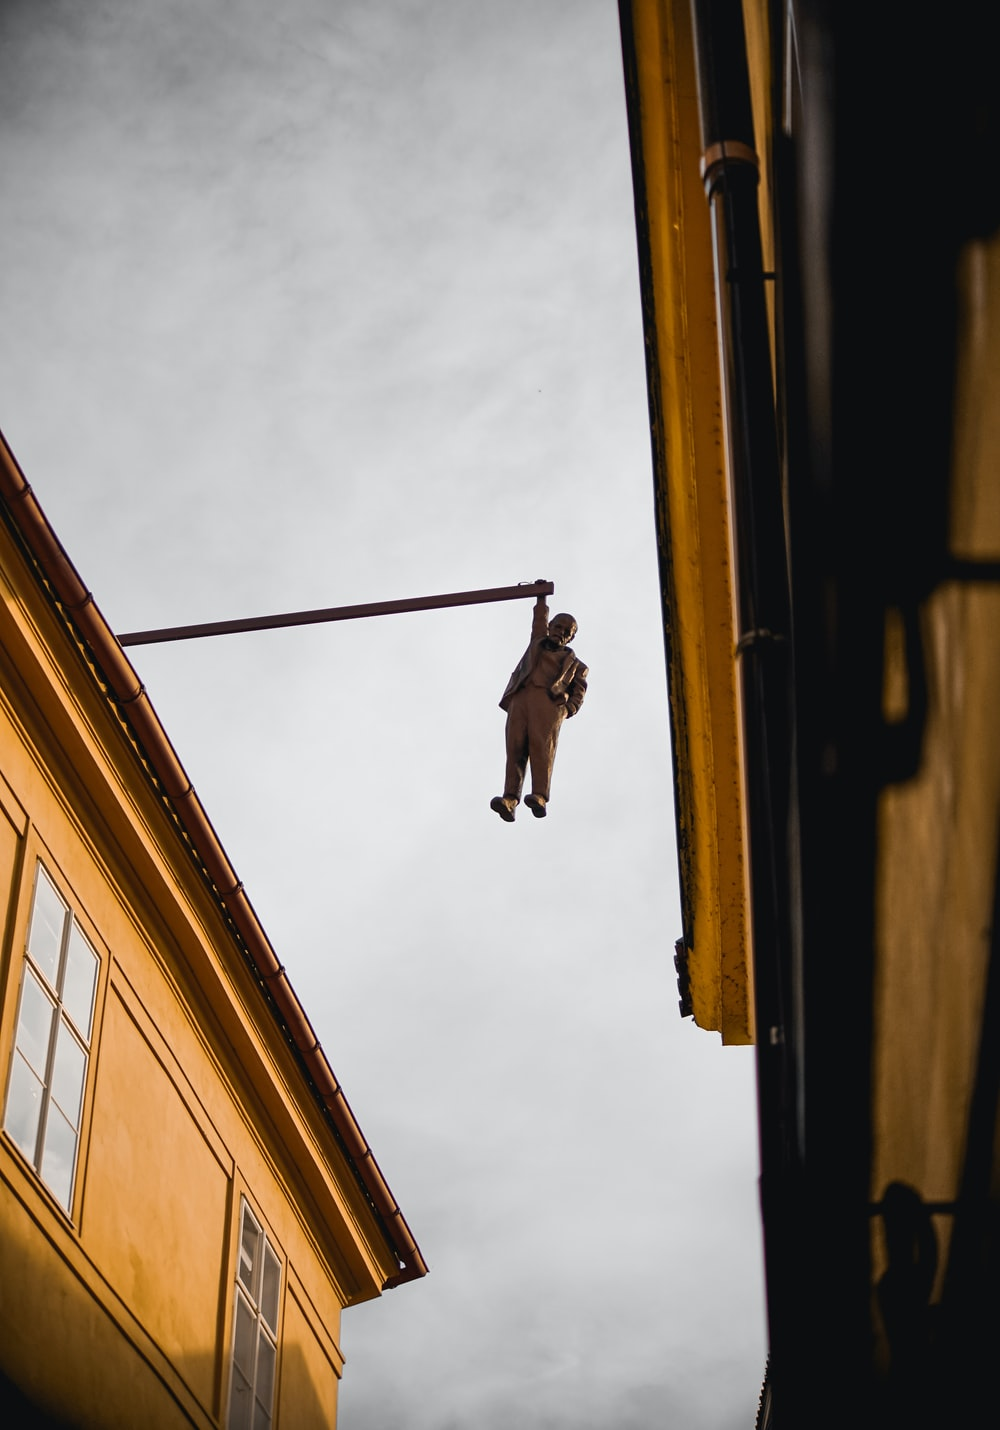 low-angle photography of statue of person hanging on rail during daytime